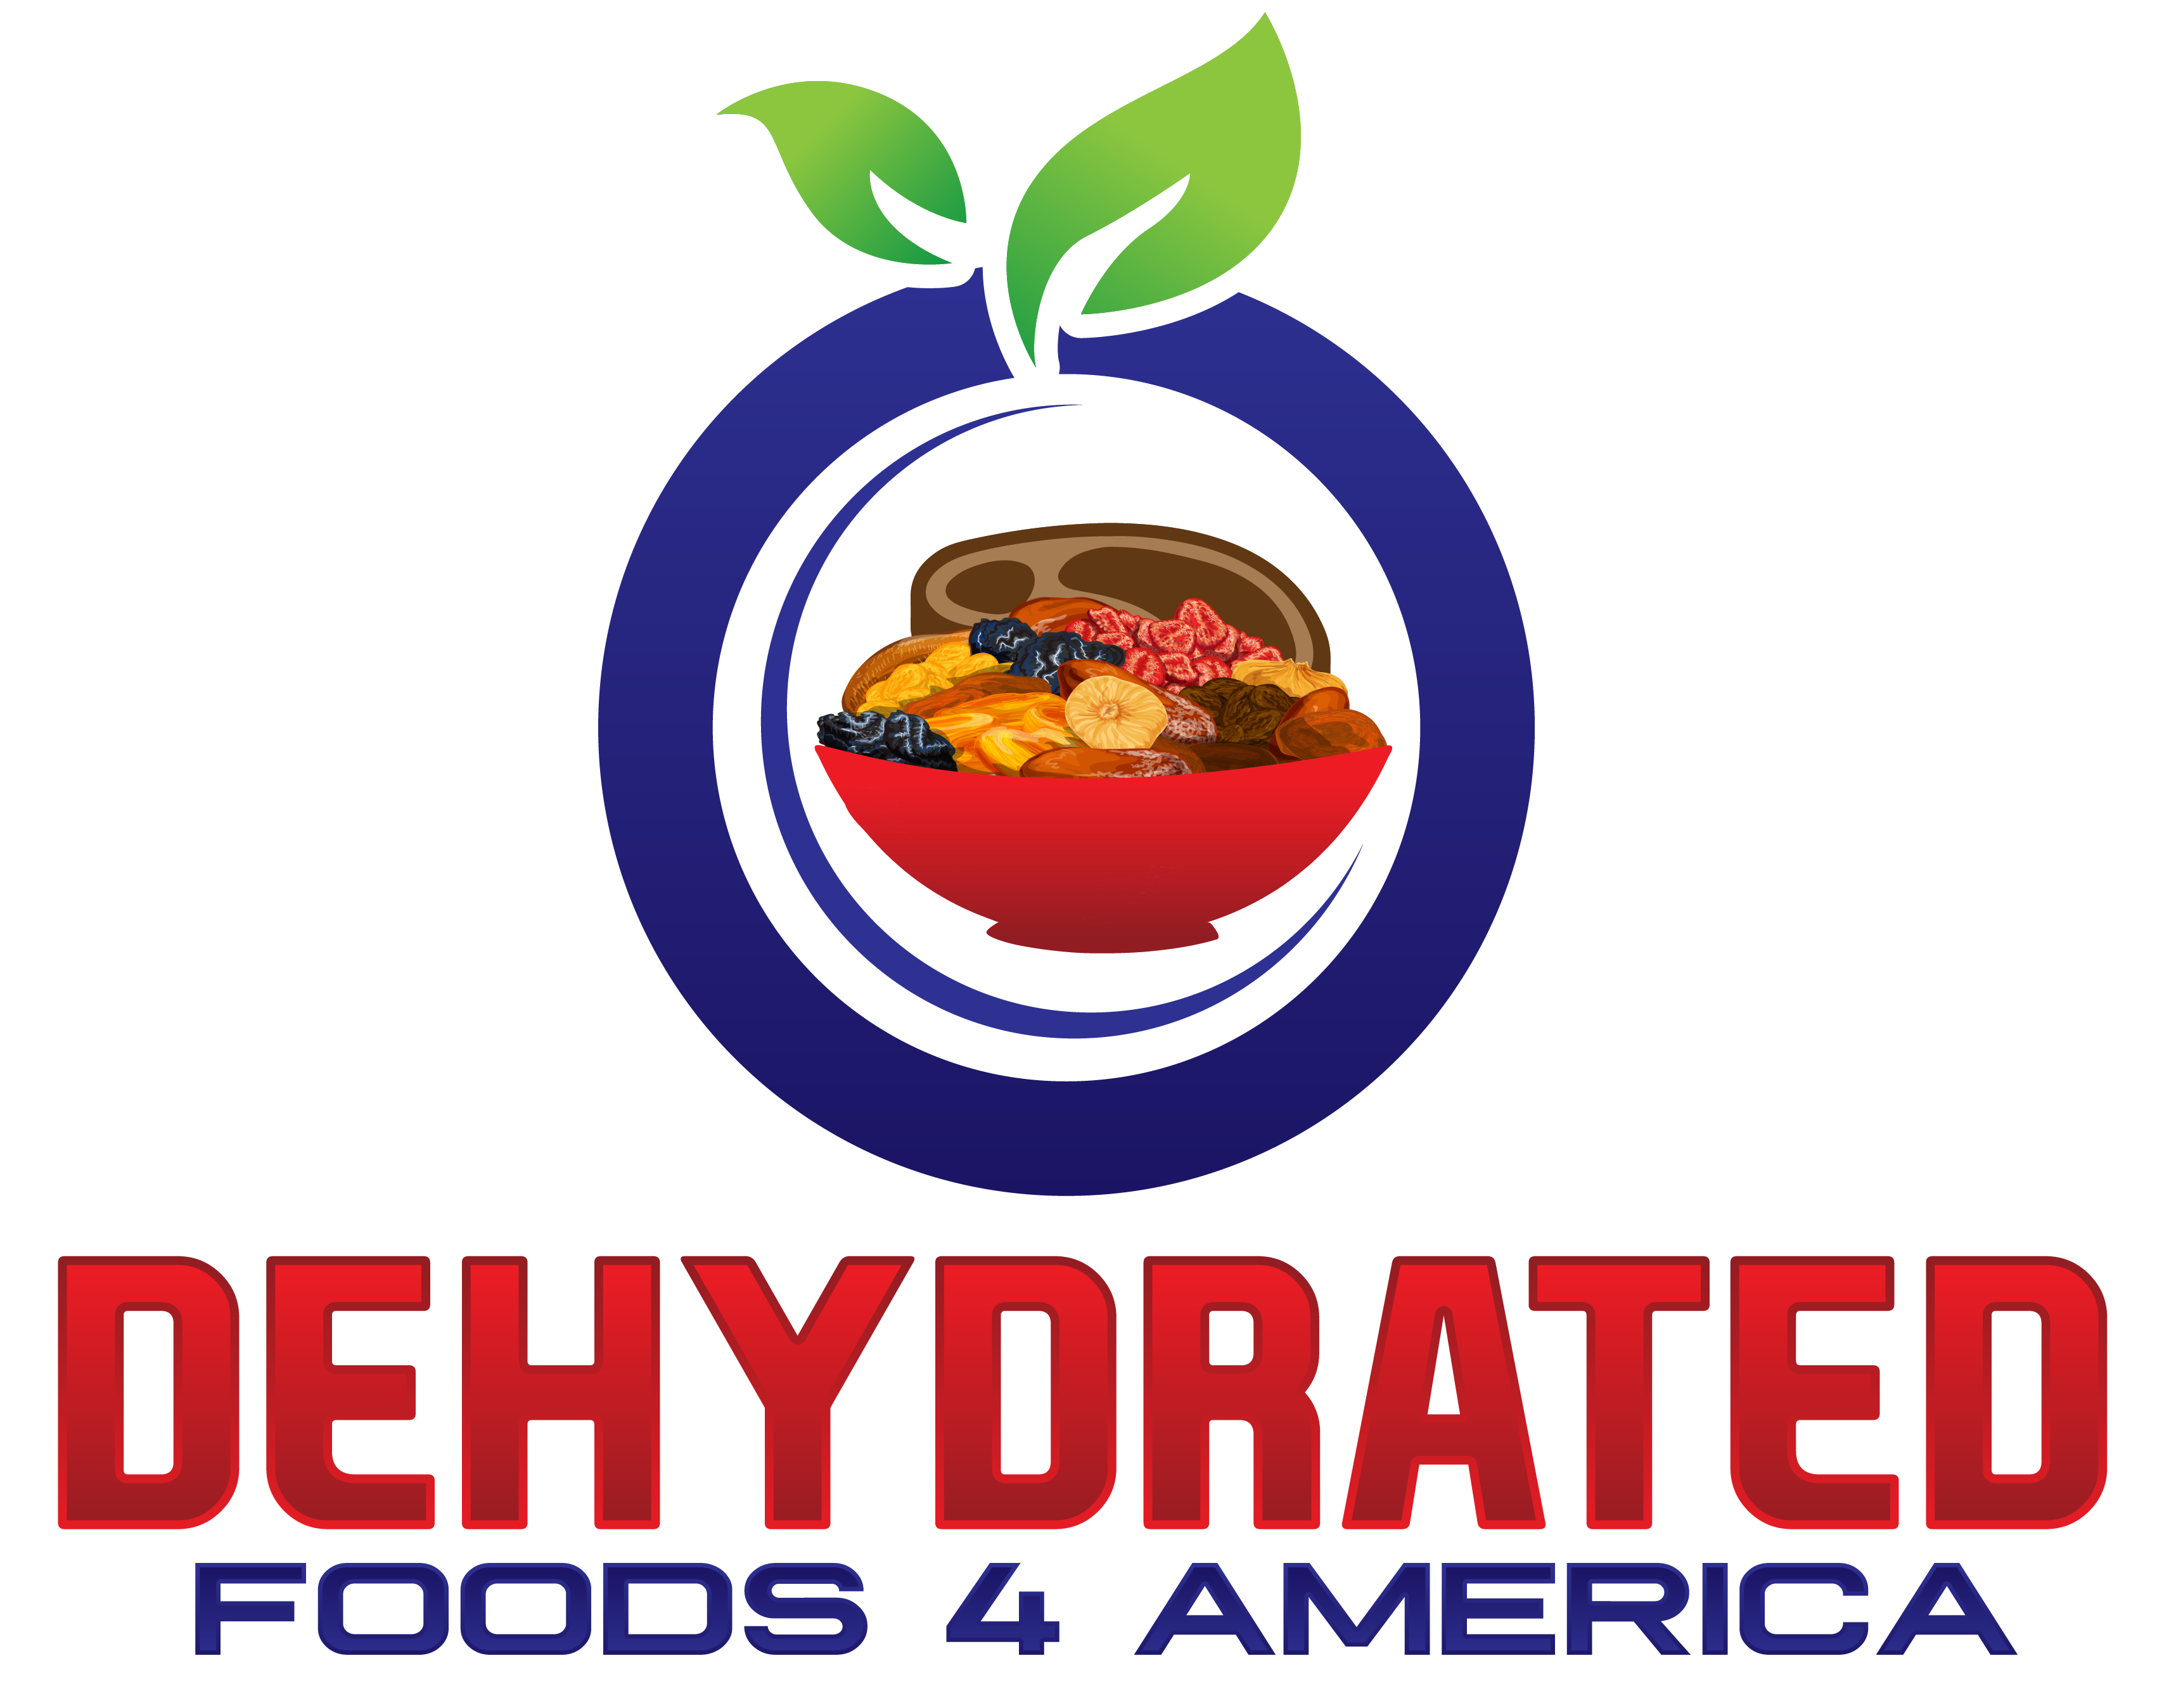 Dehydrated Foods 4 America